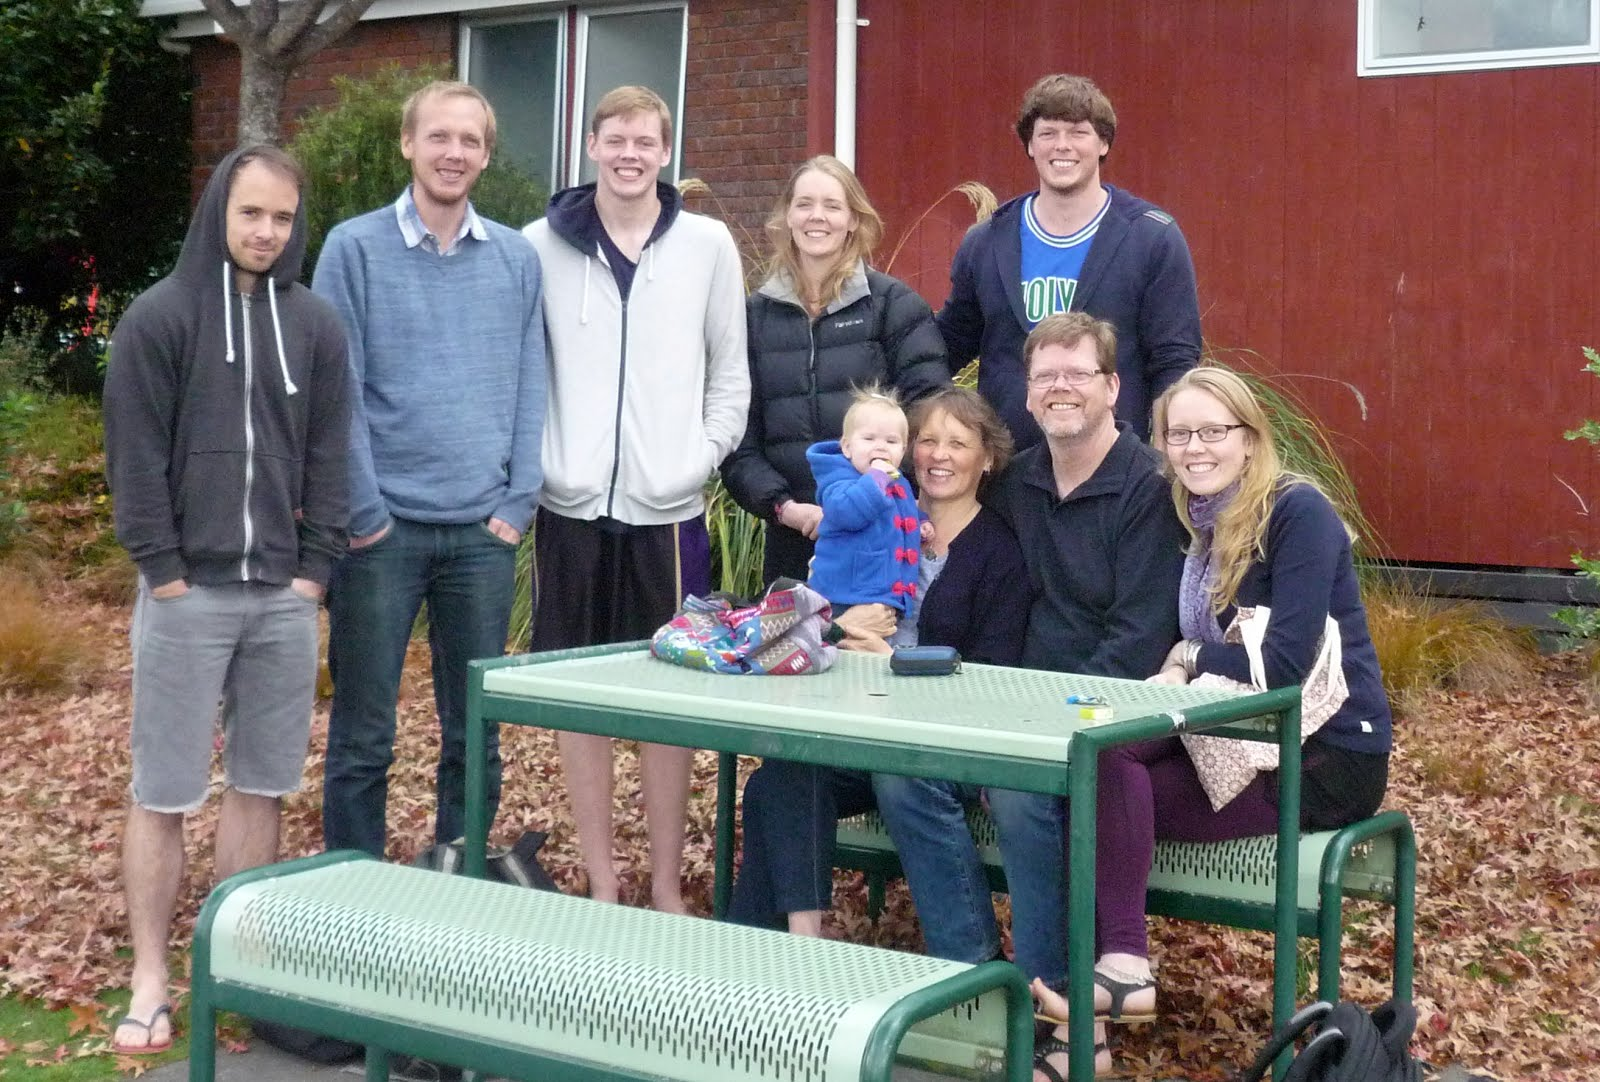 the family in turangi (new zealand)